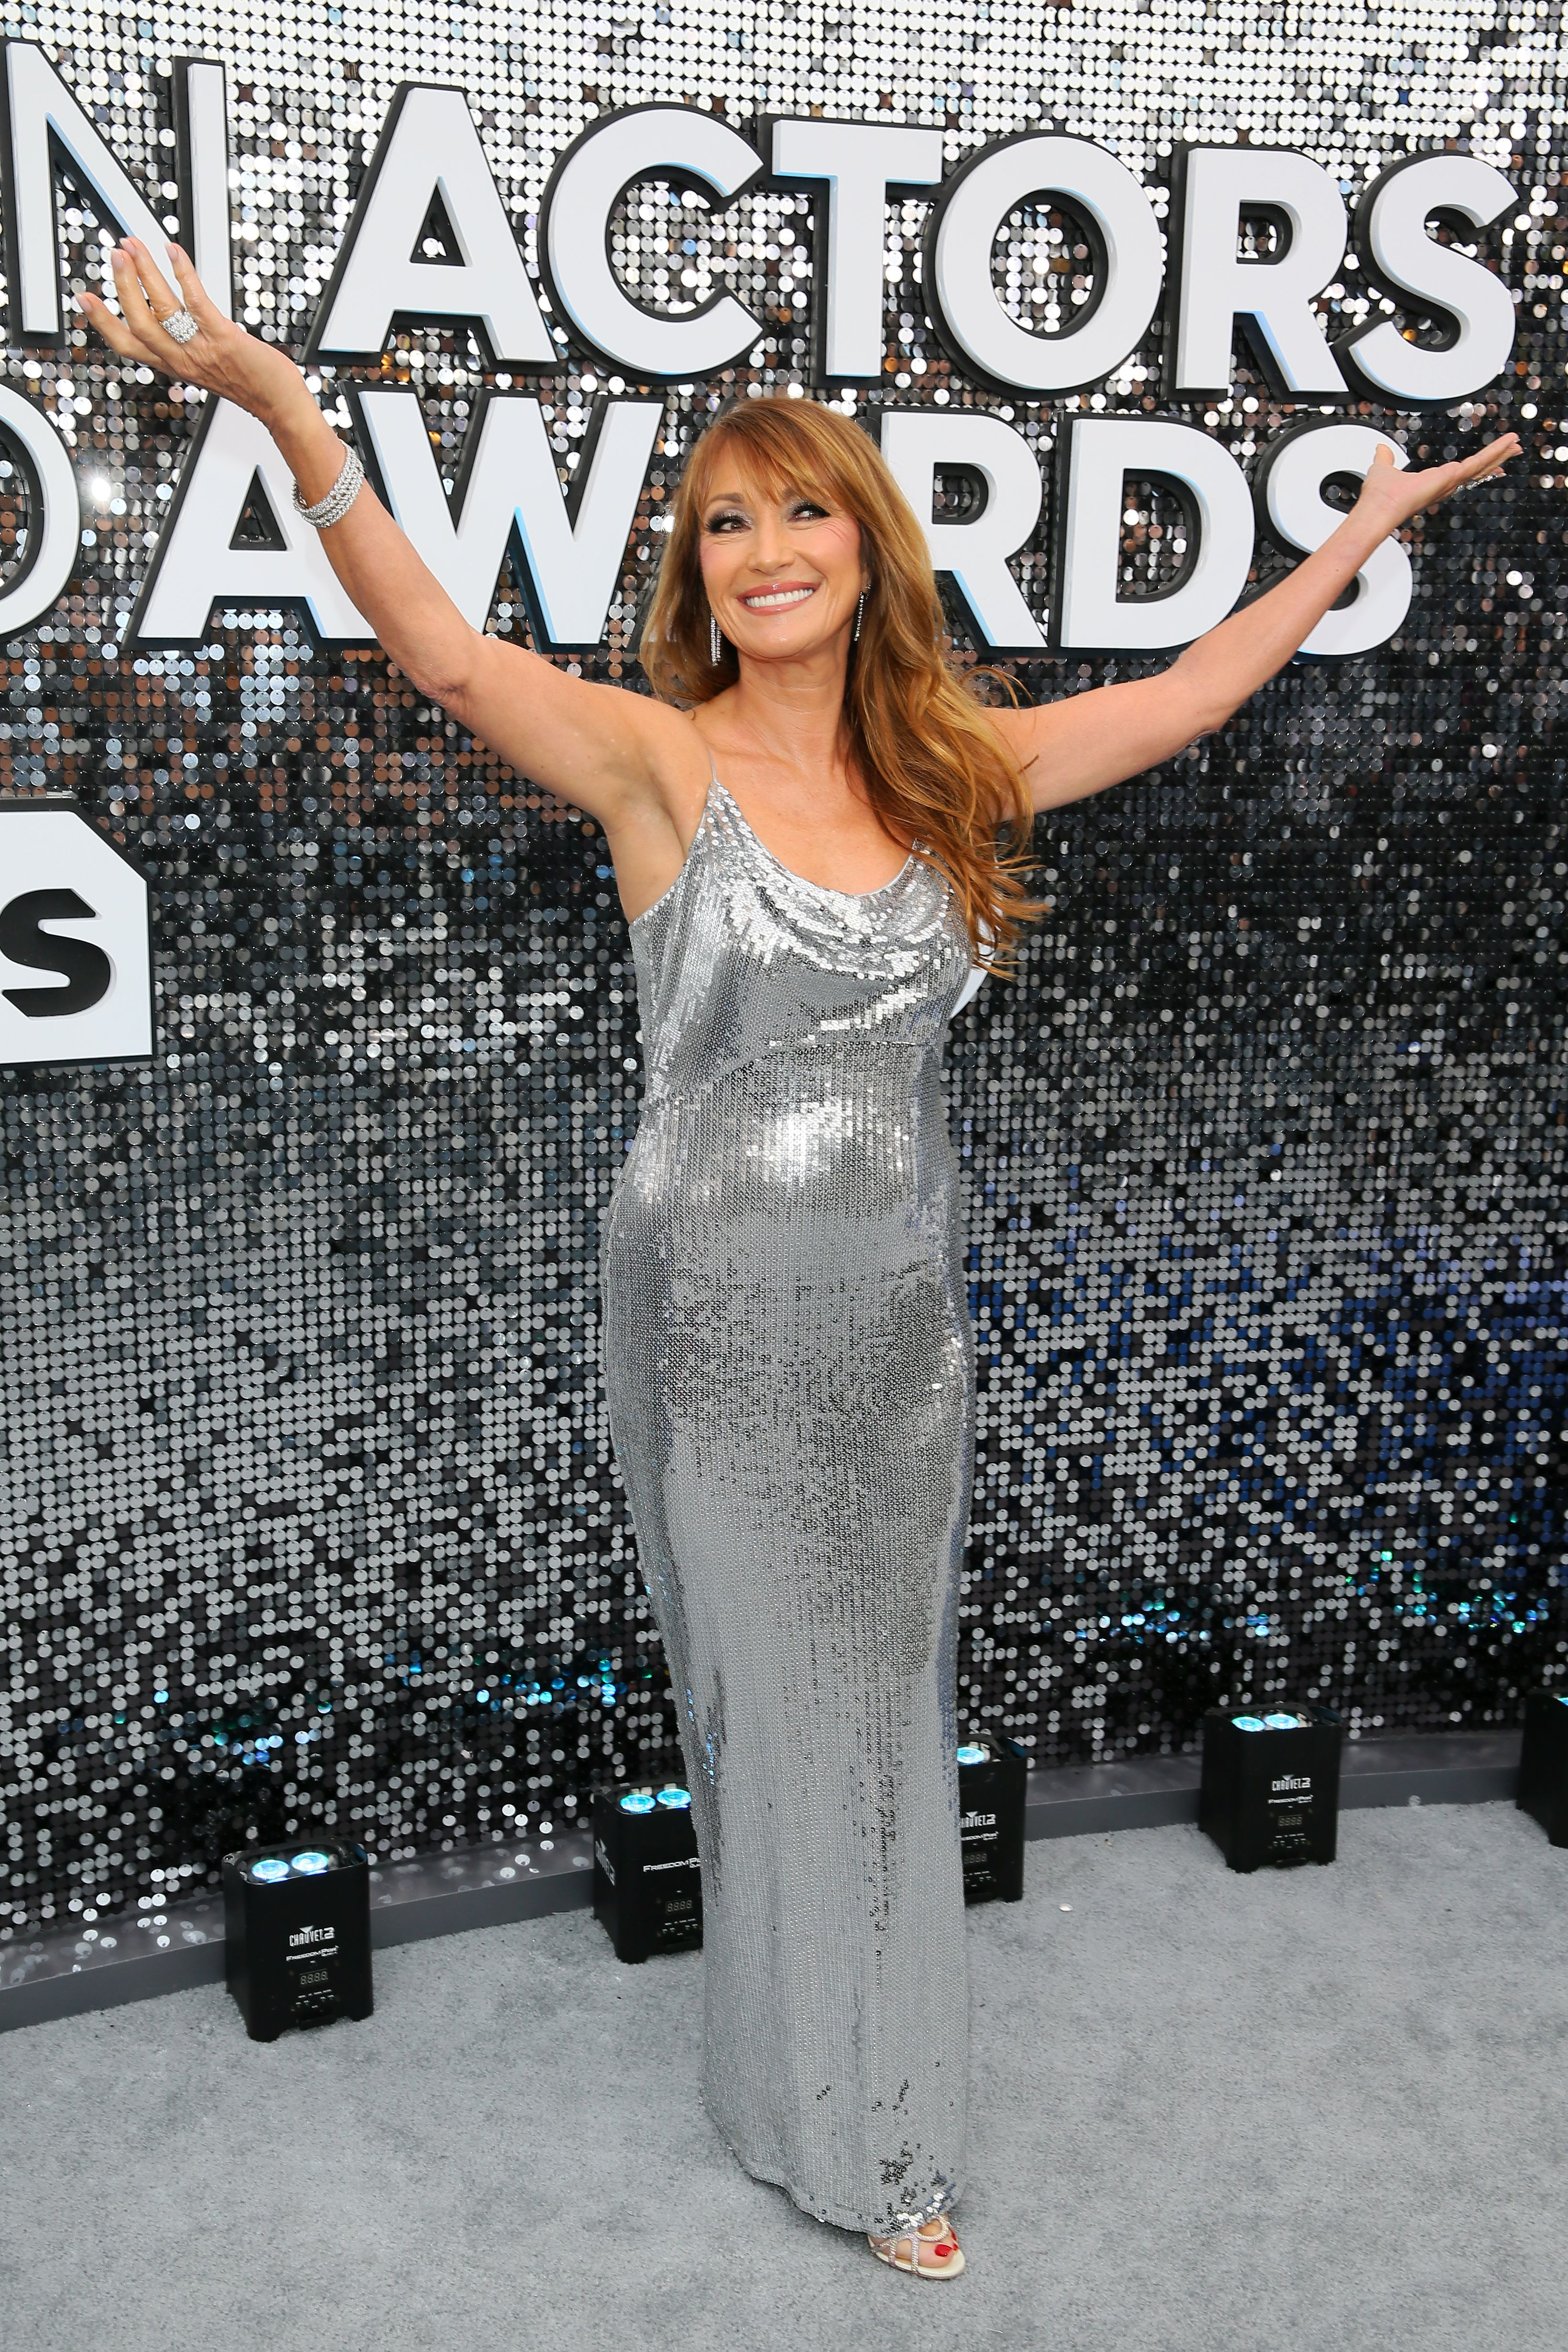 US/British actress Jane Seymour arrives for the 26th Annual Screen Actors Guild Awards at the Shrine Auditorium in Los Angeles on January 19, 2020. (Photo by Jean-Baptiste Lacroix / AFP) (Photo by JEAN-BAPTISTE LACROIX/AFP via Getty Images)